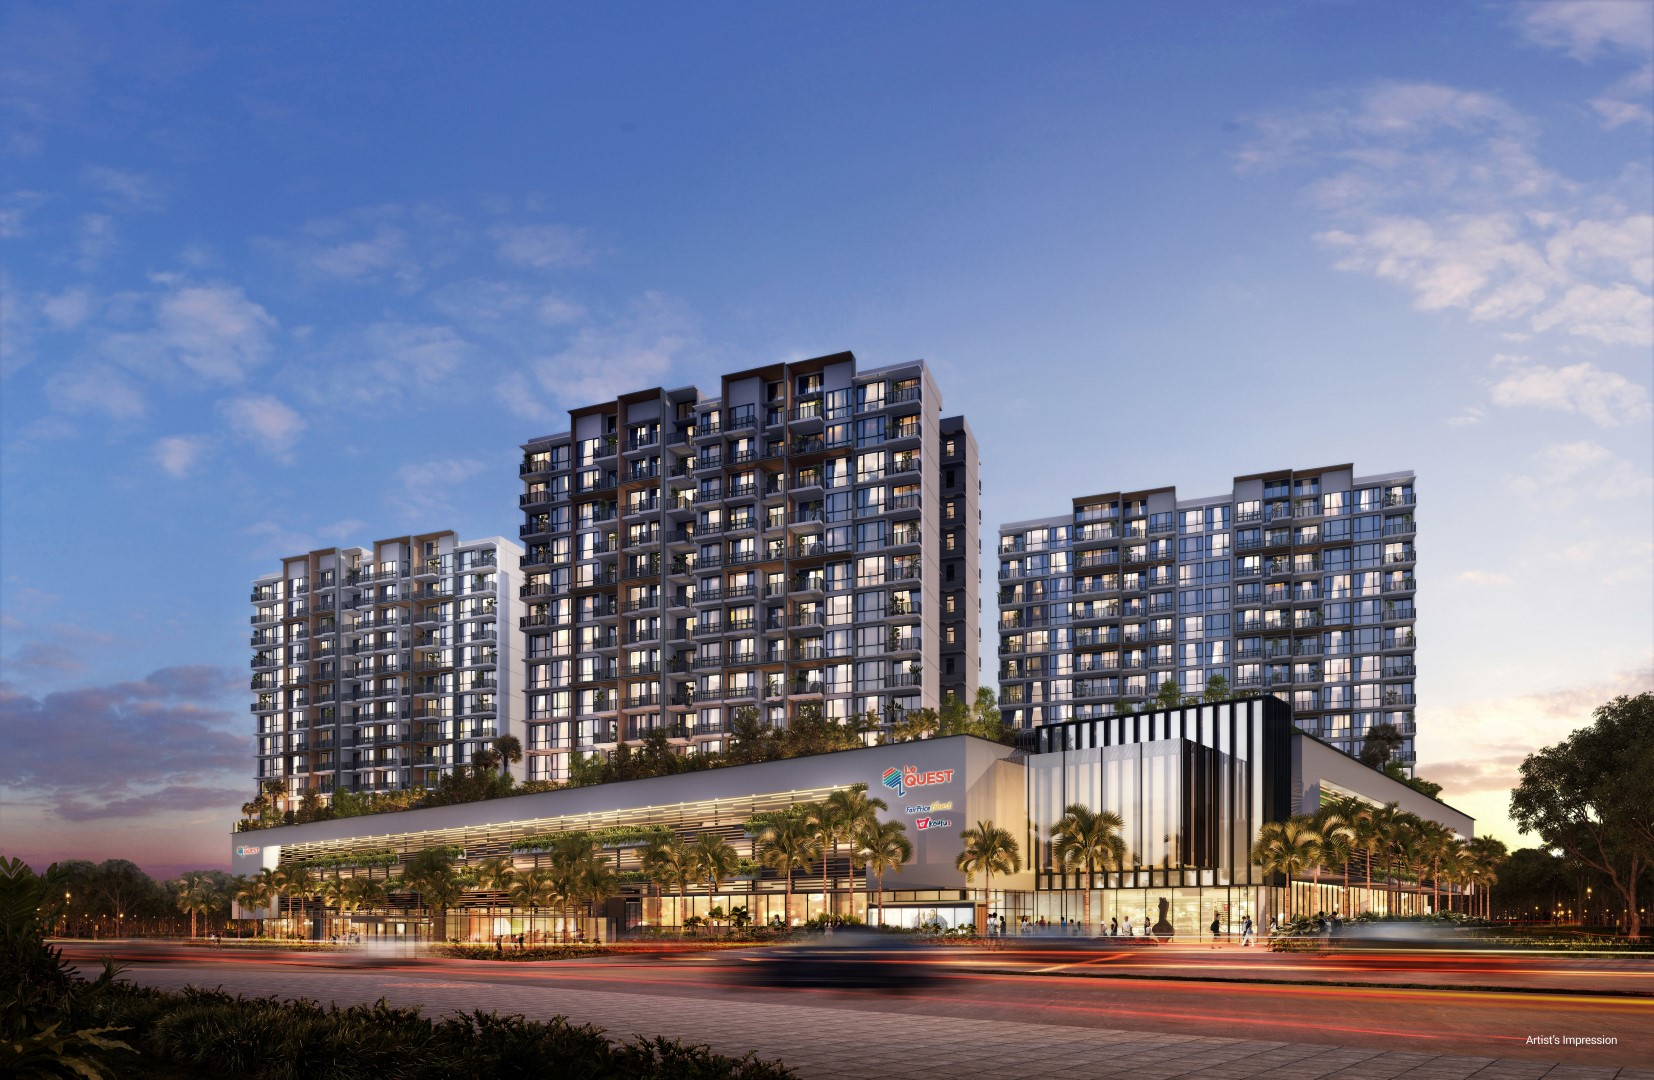 Artist's impression of Le Quest, a new mixed development with both commercial and residential units